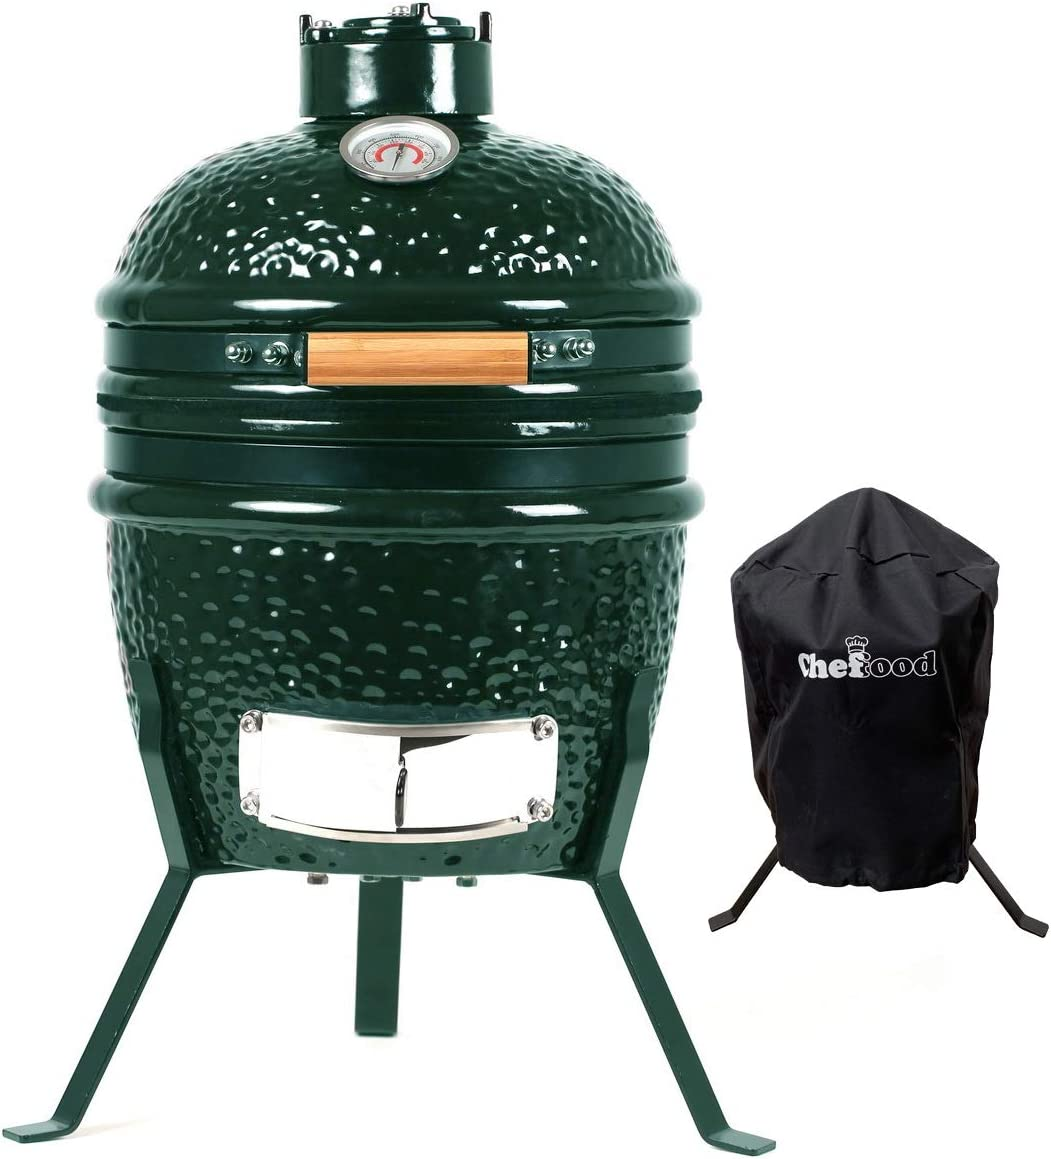 "Chefood 13"" Ceramic Kamado: A fuel-efficient Kamado grill for all season"